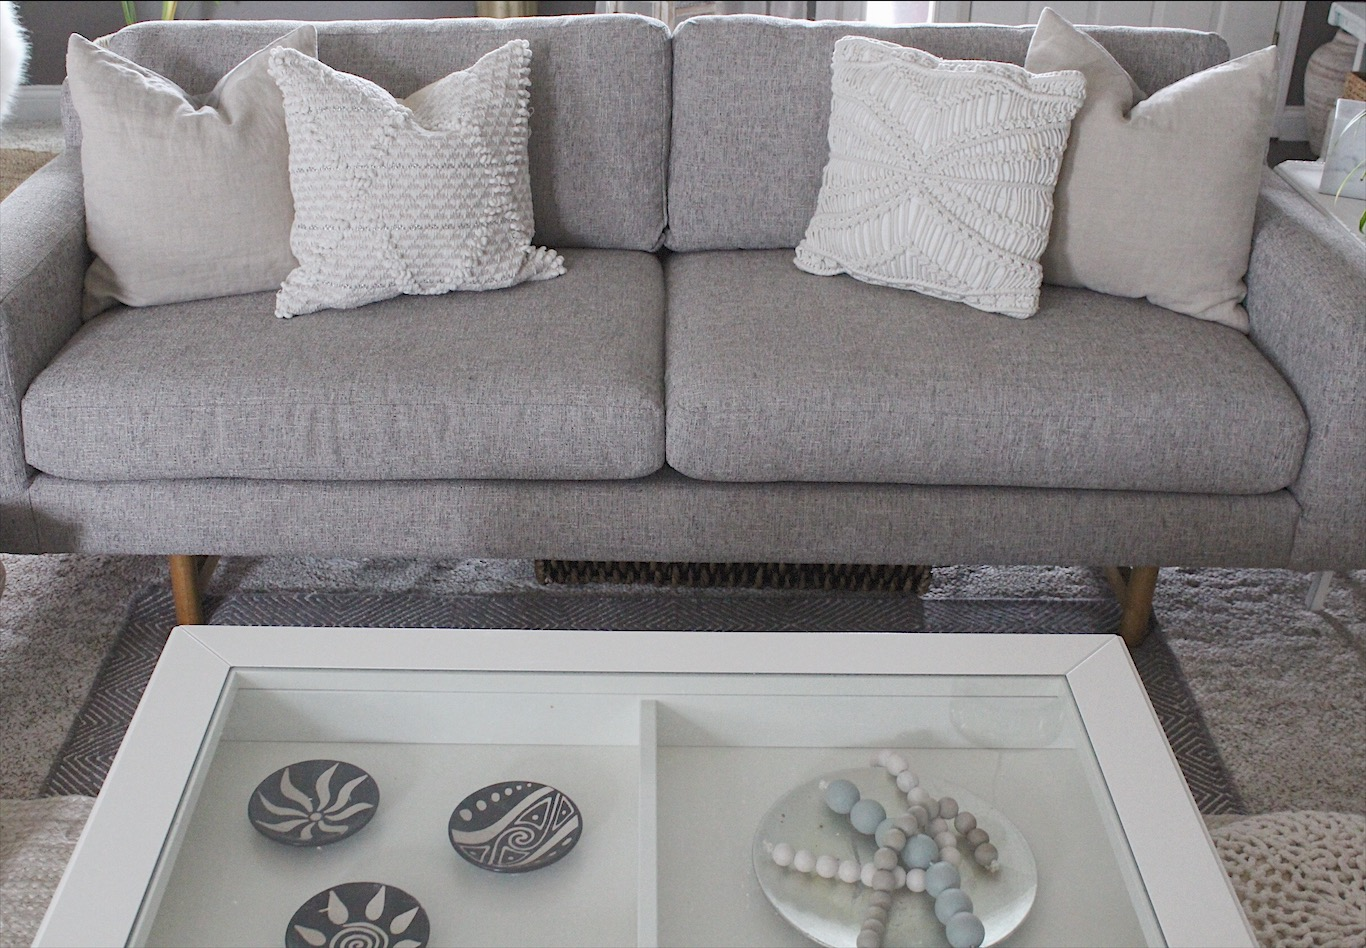 5 key accessories every home needs - step 1 Neutral Pillows